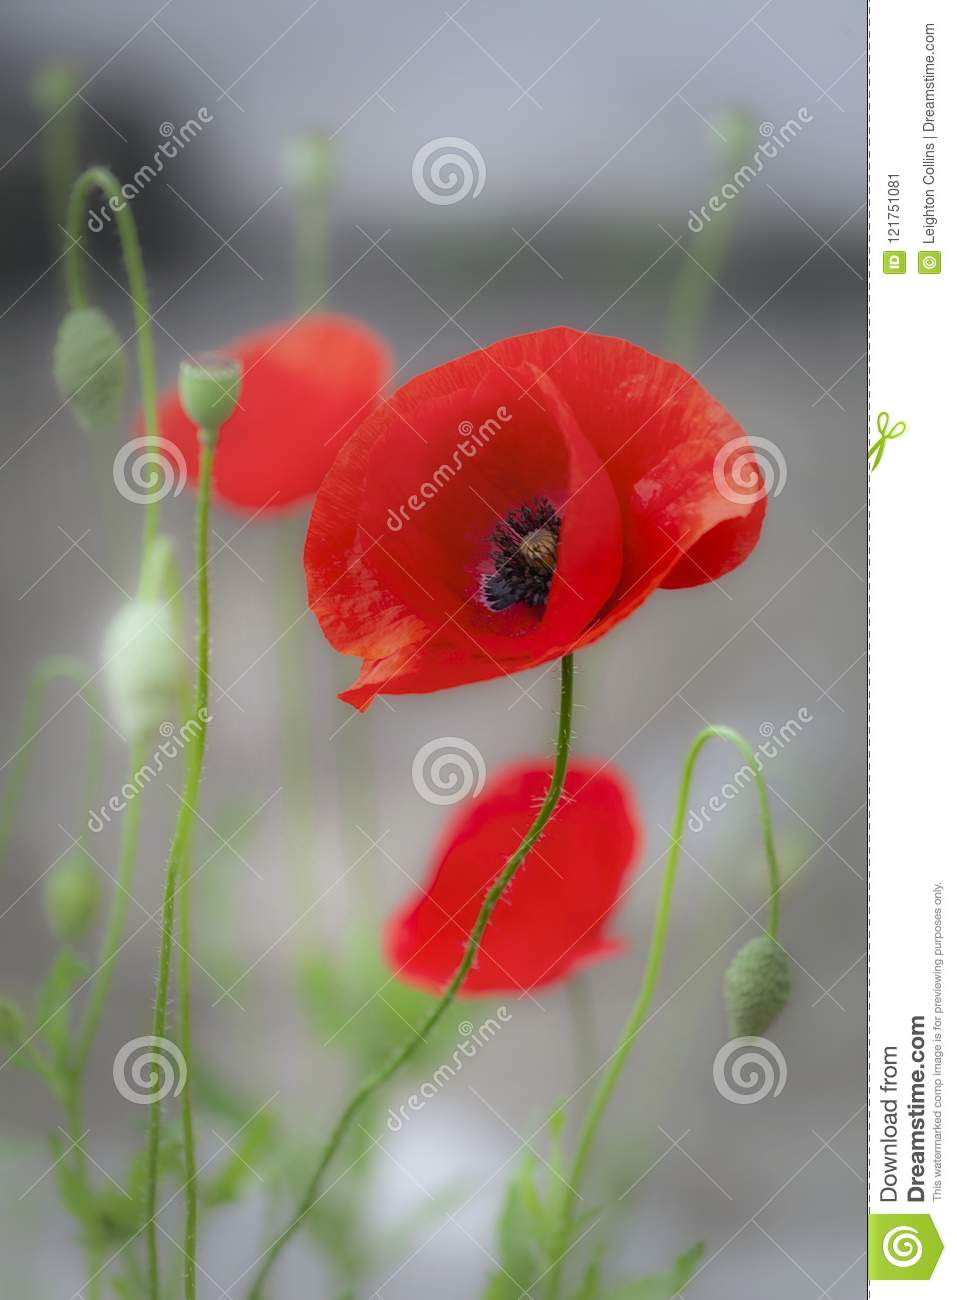 Red Poppies In The Mist Stock Image Image Of Flowers 121751081